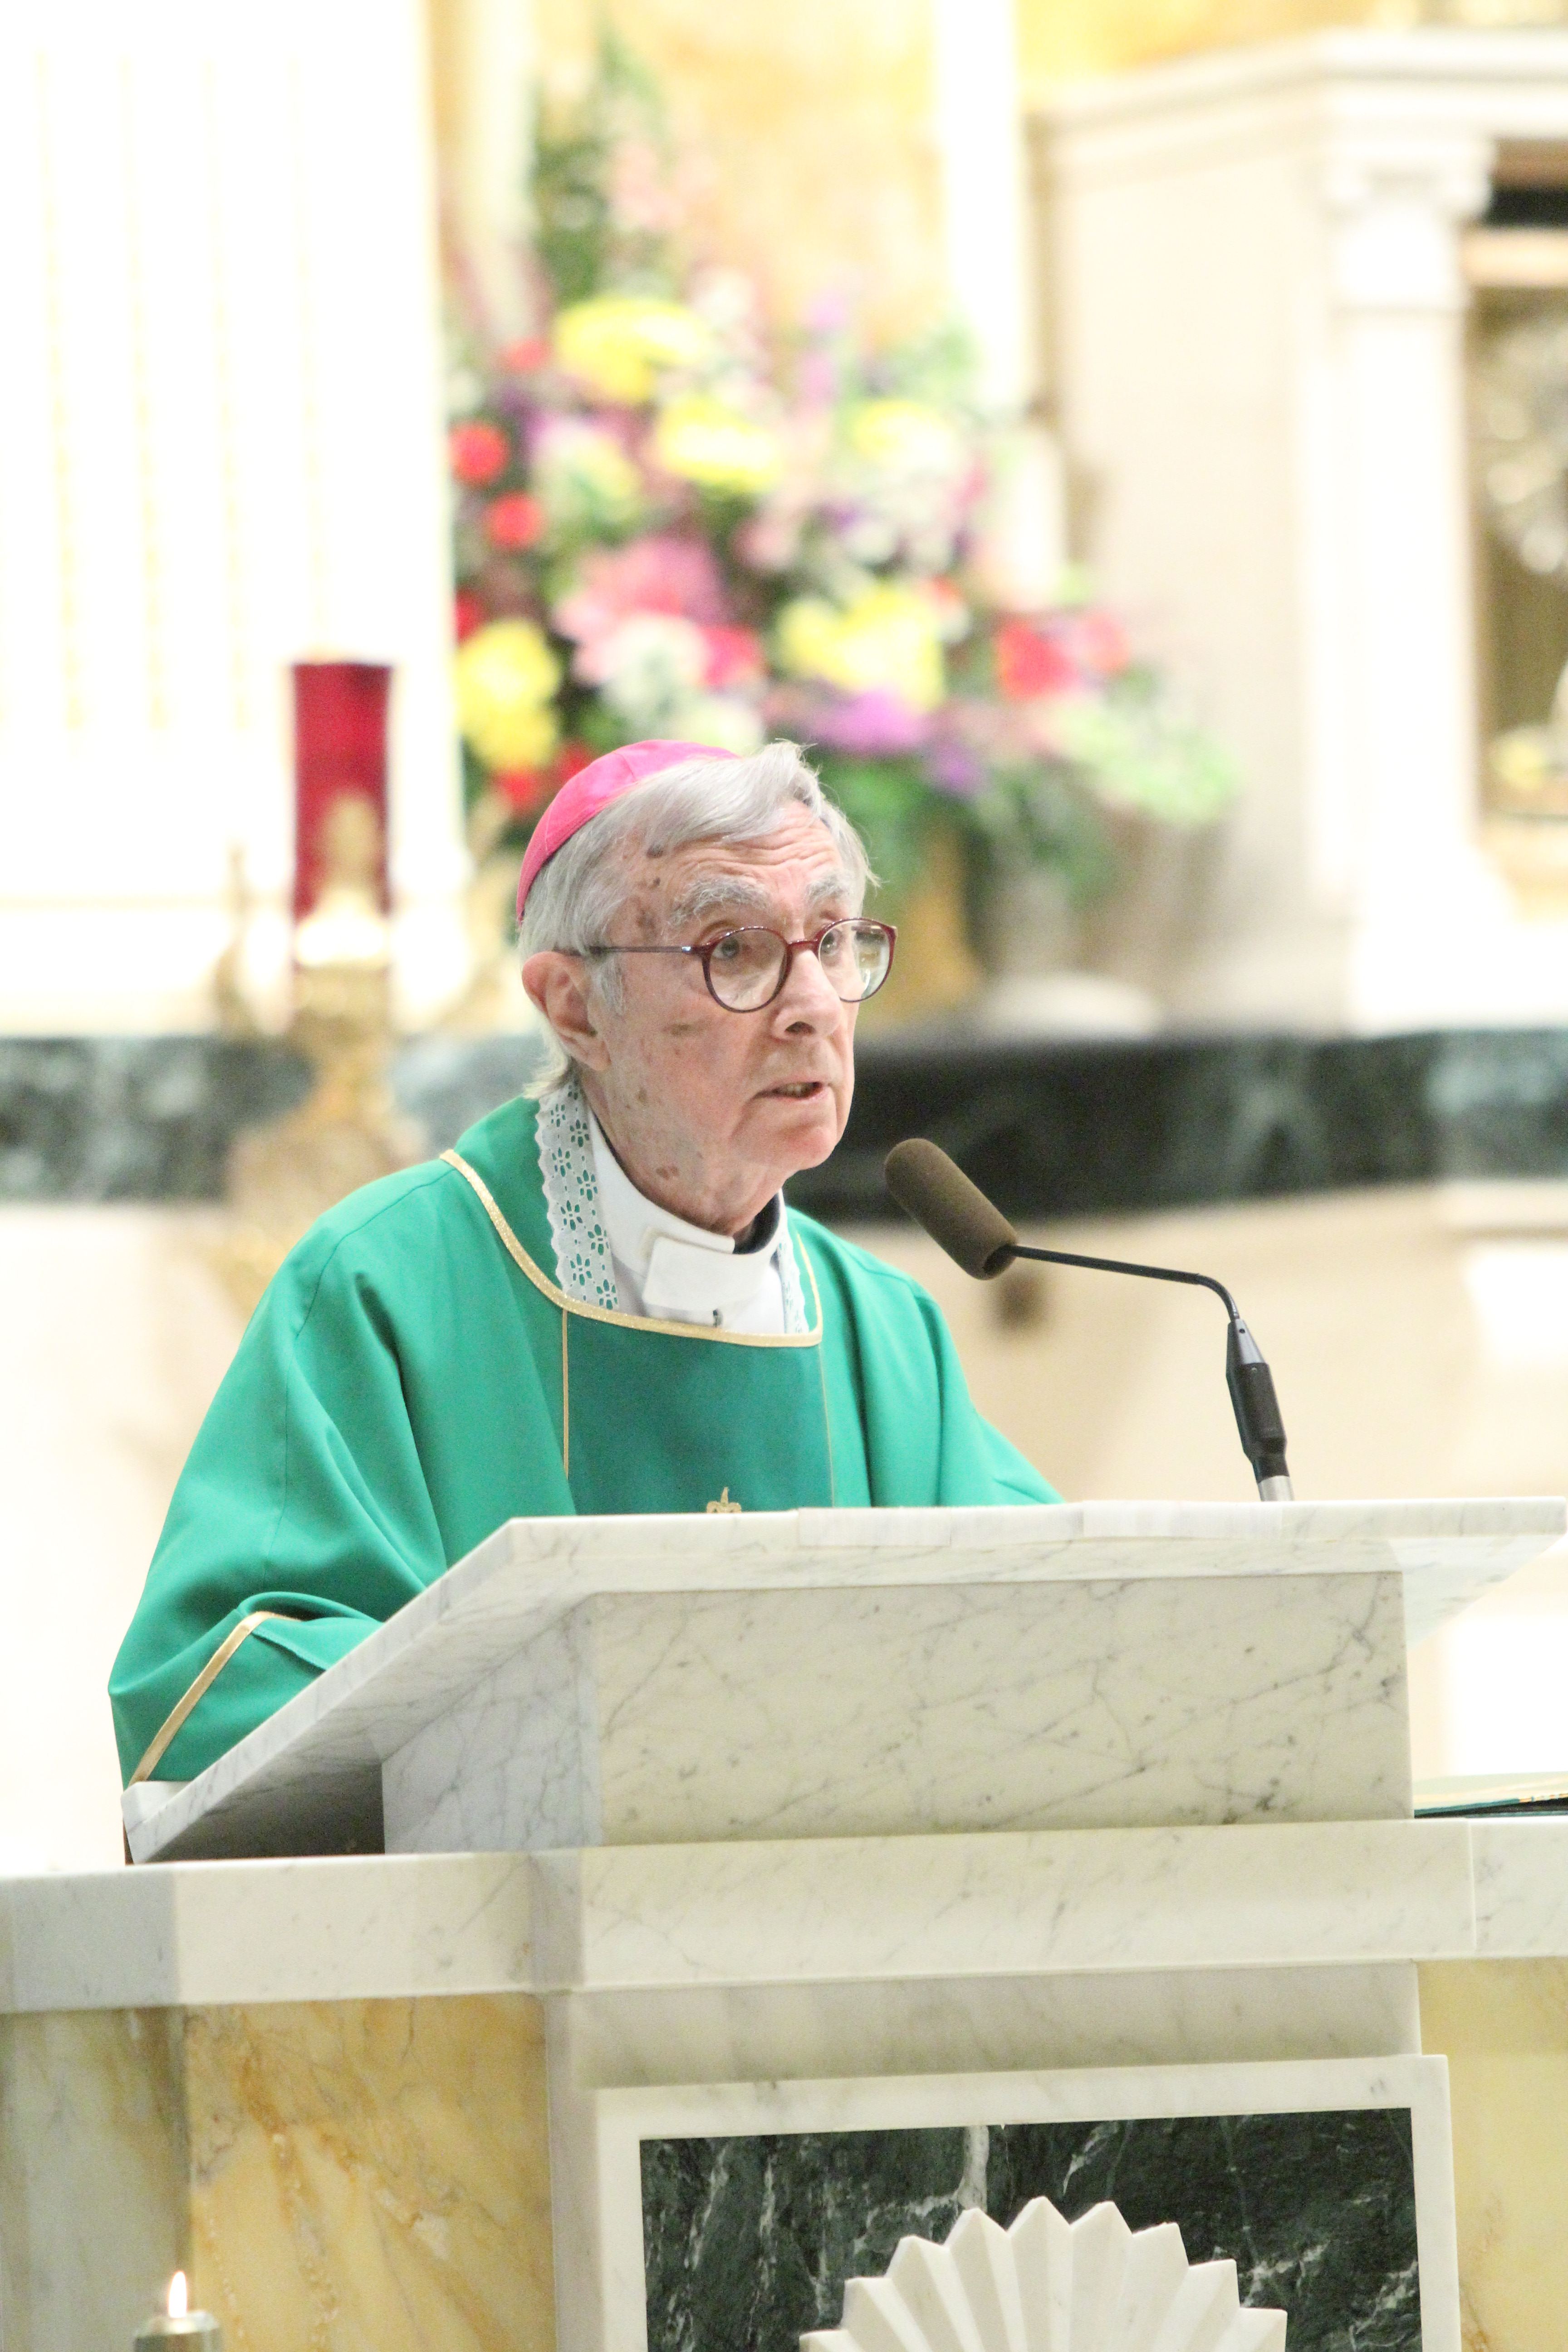 Retired Auxiliary Bishop Louis DeSimone gives the homily during a Mass at St. Monica Church Feb. 18. Bishop DeSimone was celebrating his 90th birthday at the parish where he served as pastor for 25 years.